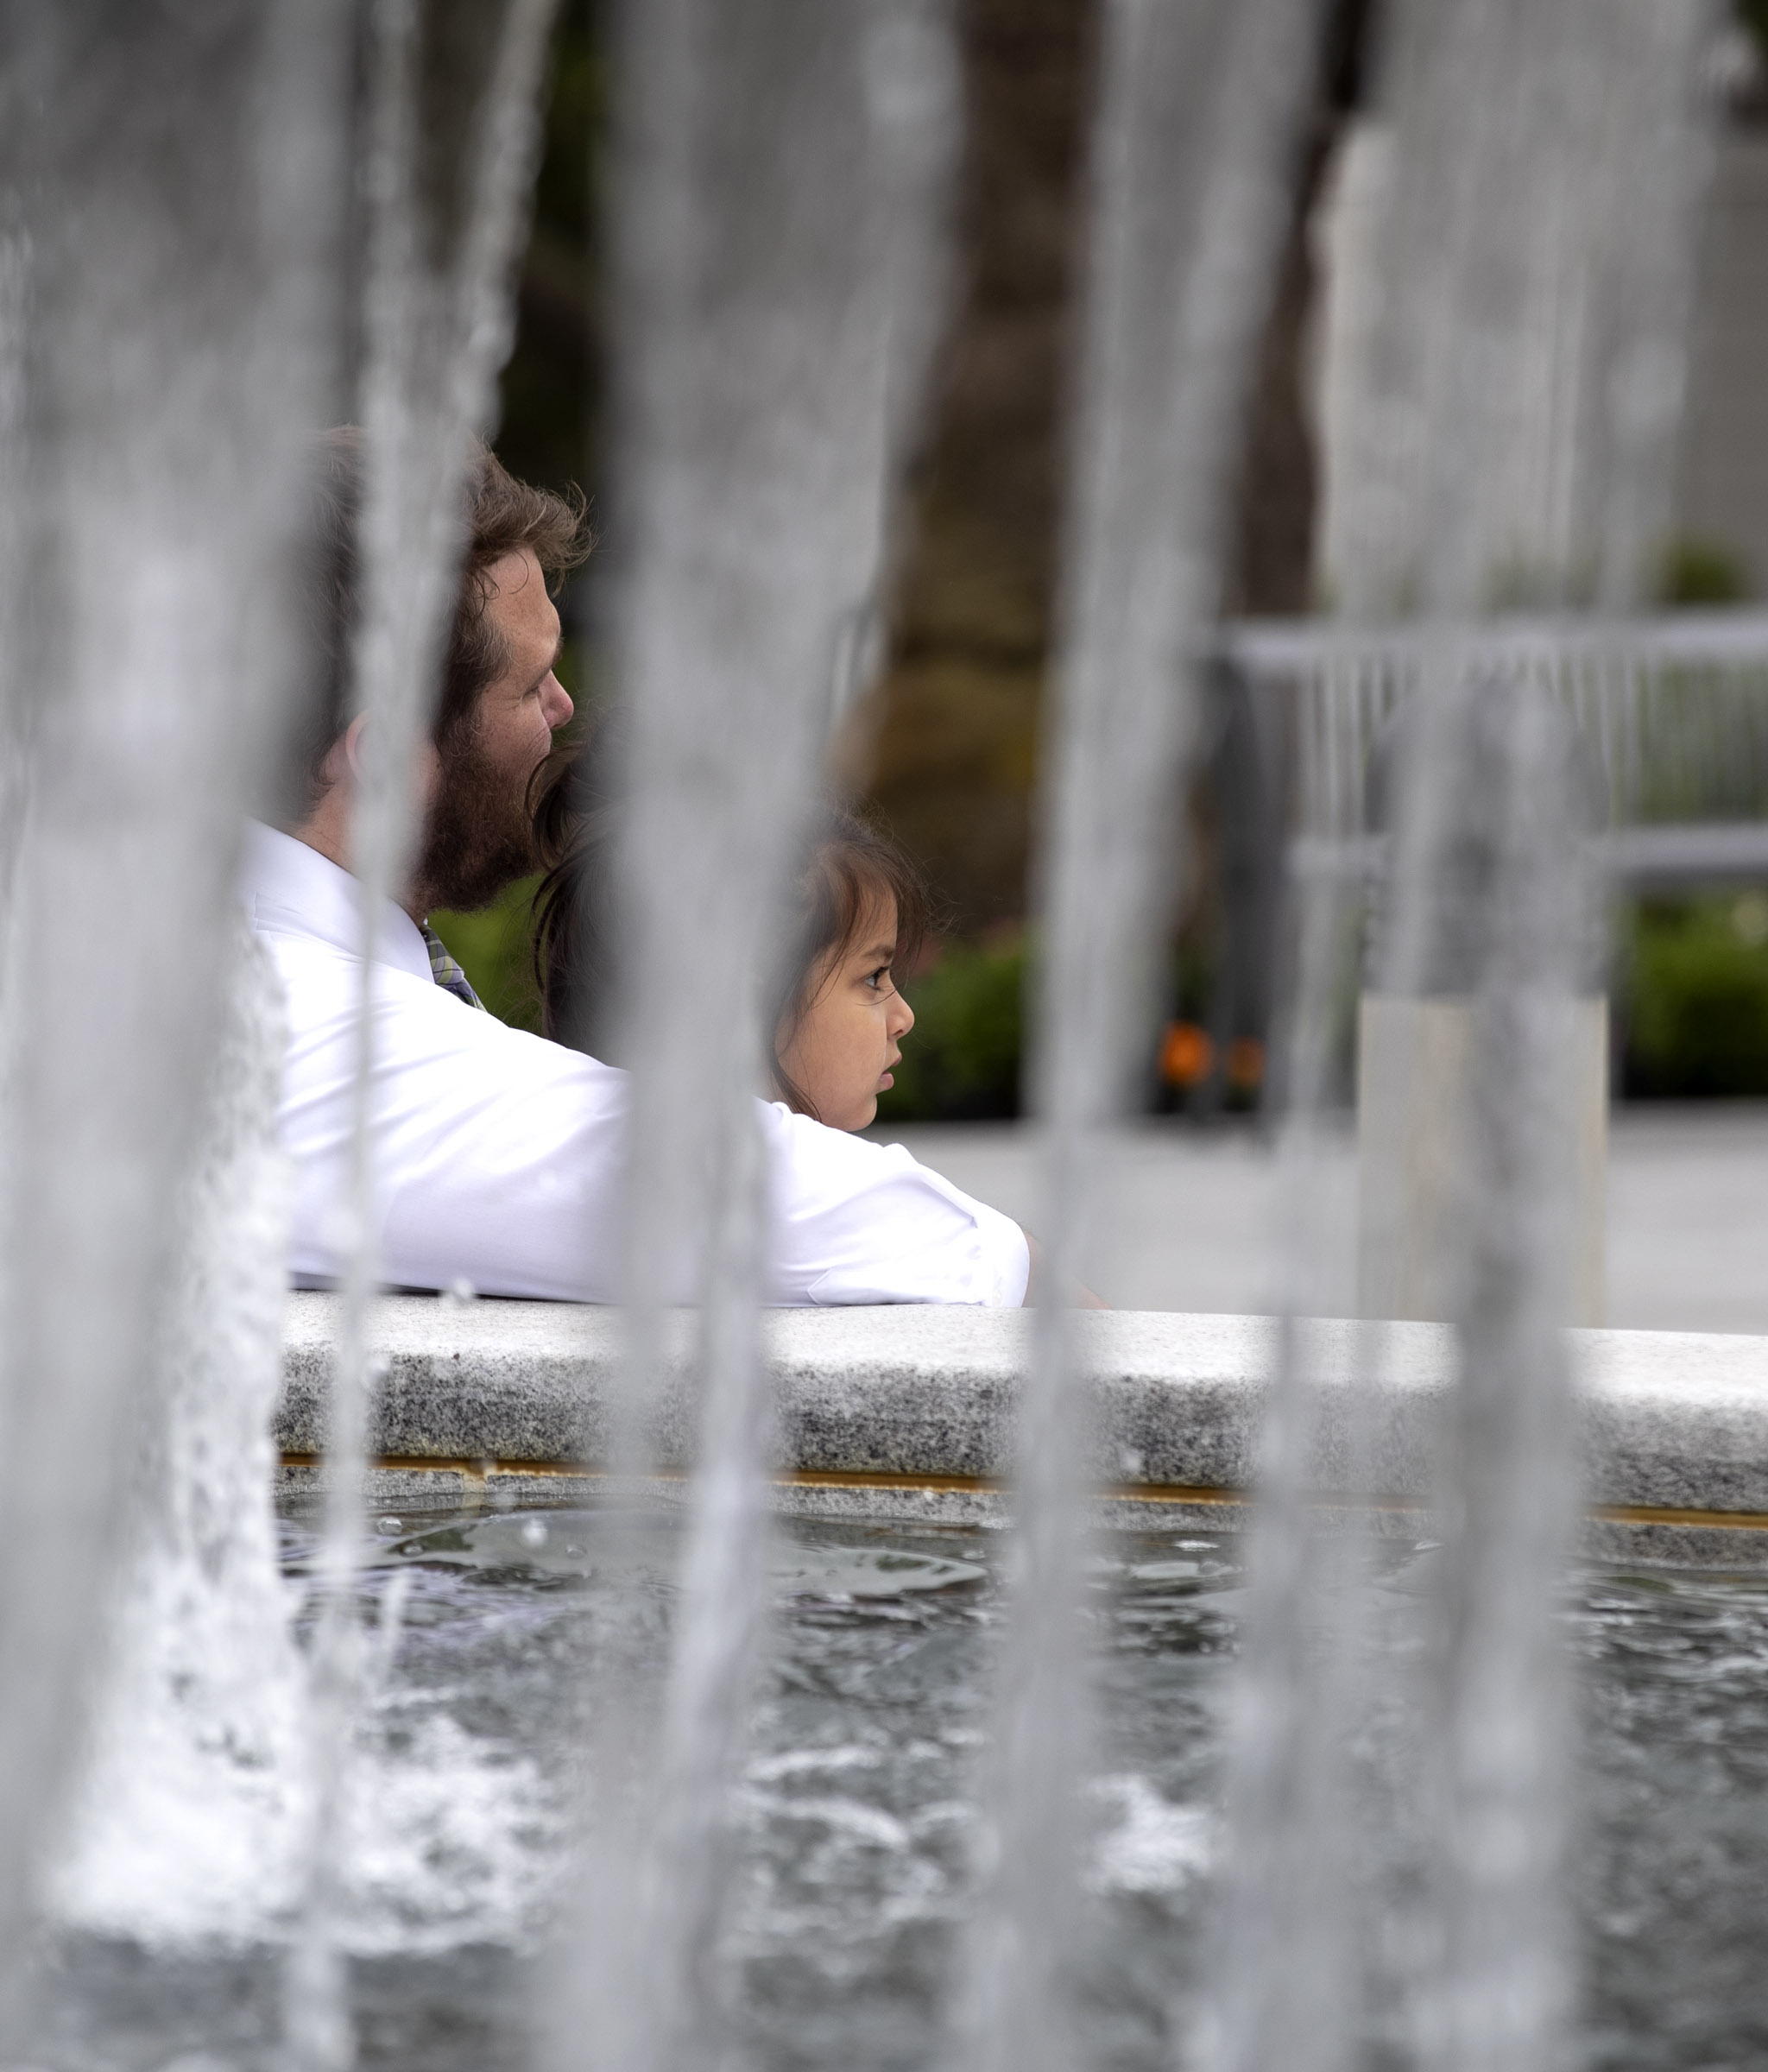 Sabraya Gorham sits by the fountain with her father, Matthew Gorham, as she waits for her mother, Avalika Gorham, to come out of the Oakland California Temple where President Dallin H. Oaks, first counselor in the First Presidency, rededicated the building on Sunday, June 16, 2019.